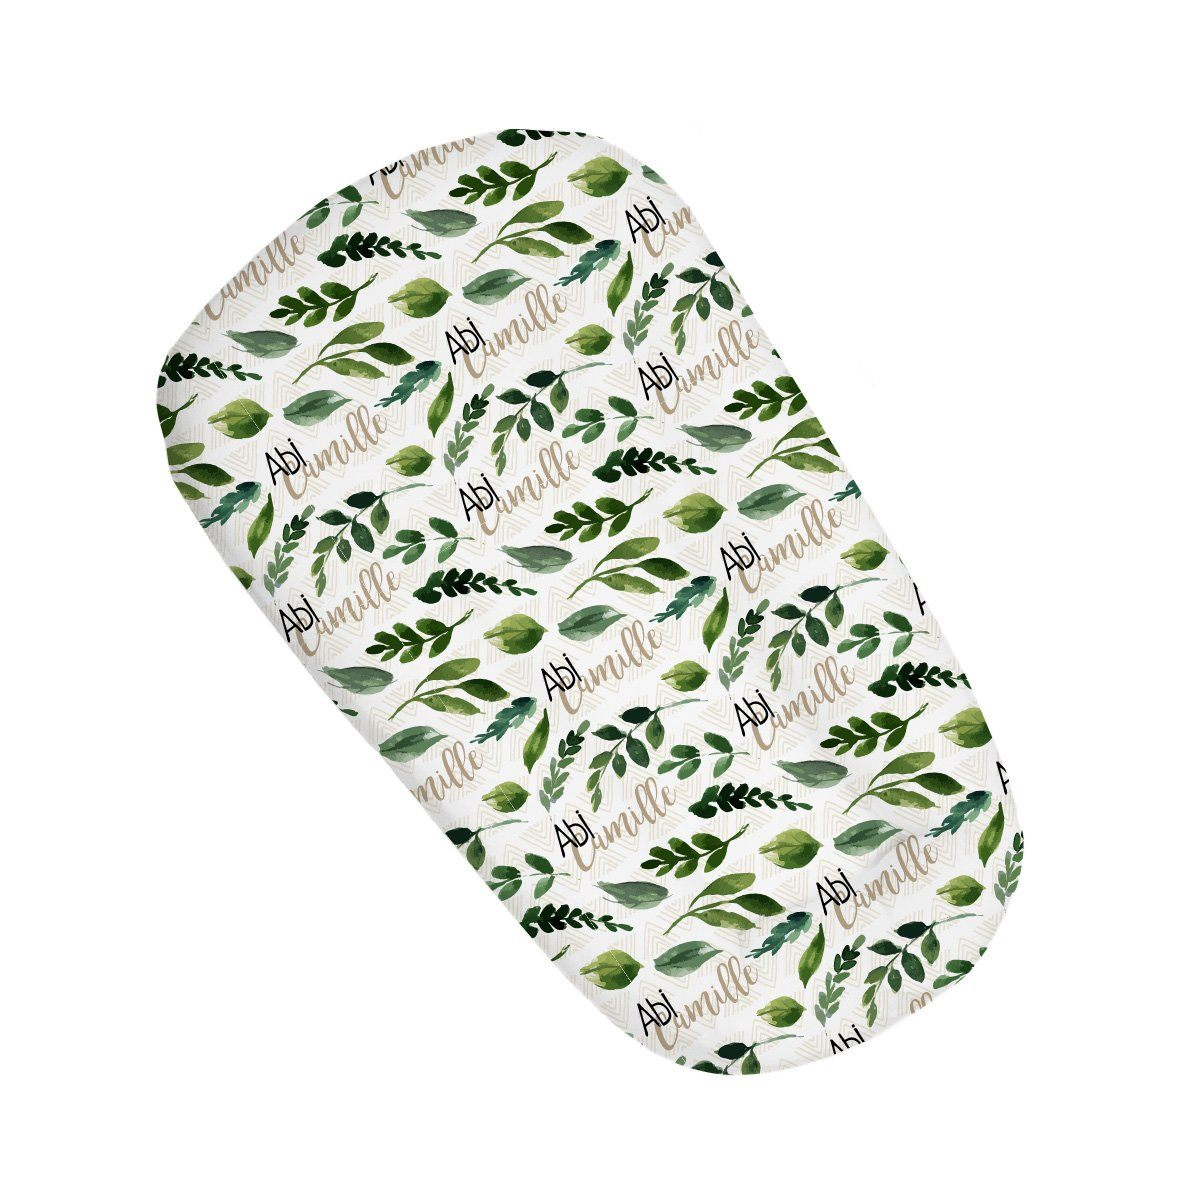 Abi's Sketchy Greenery | Sleep Nest Covers for DockATot™